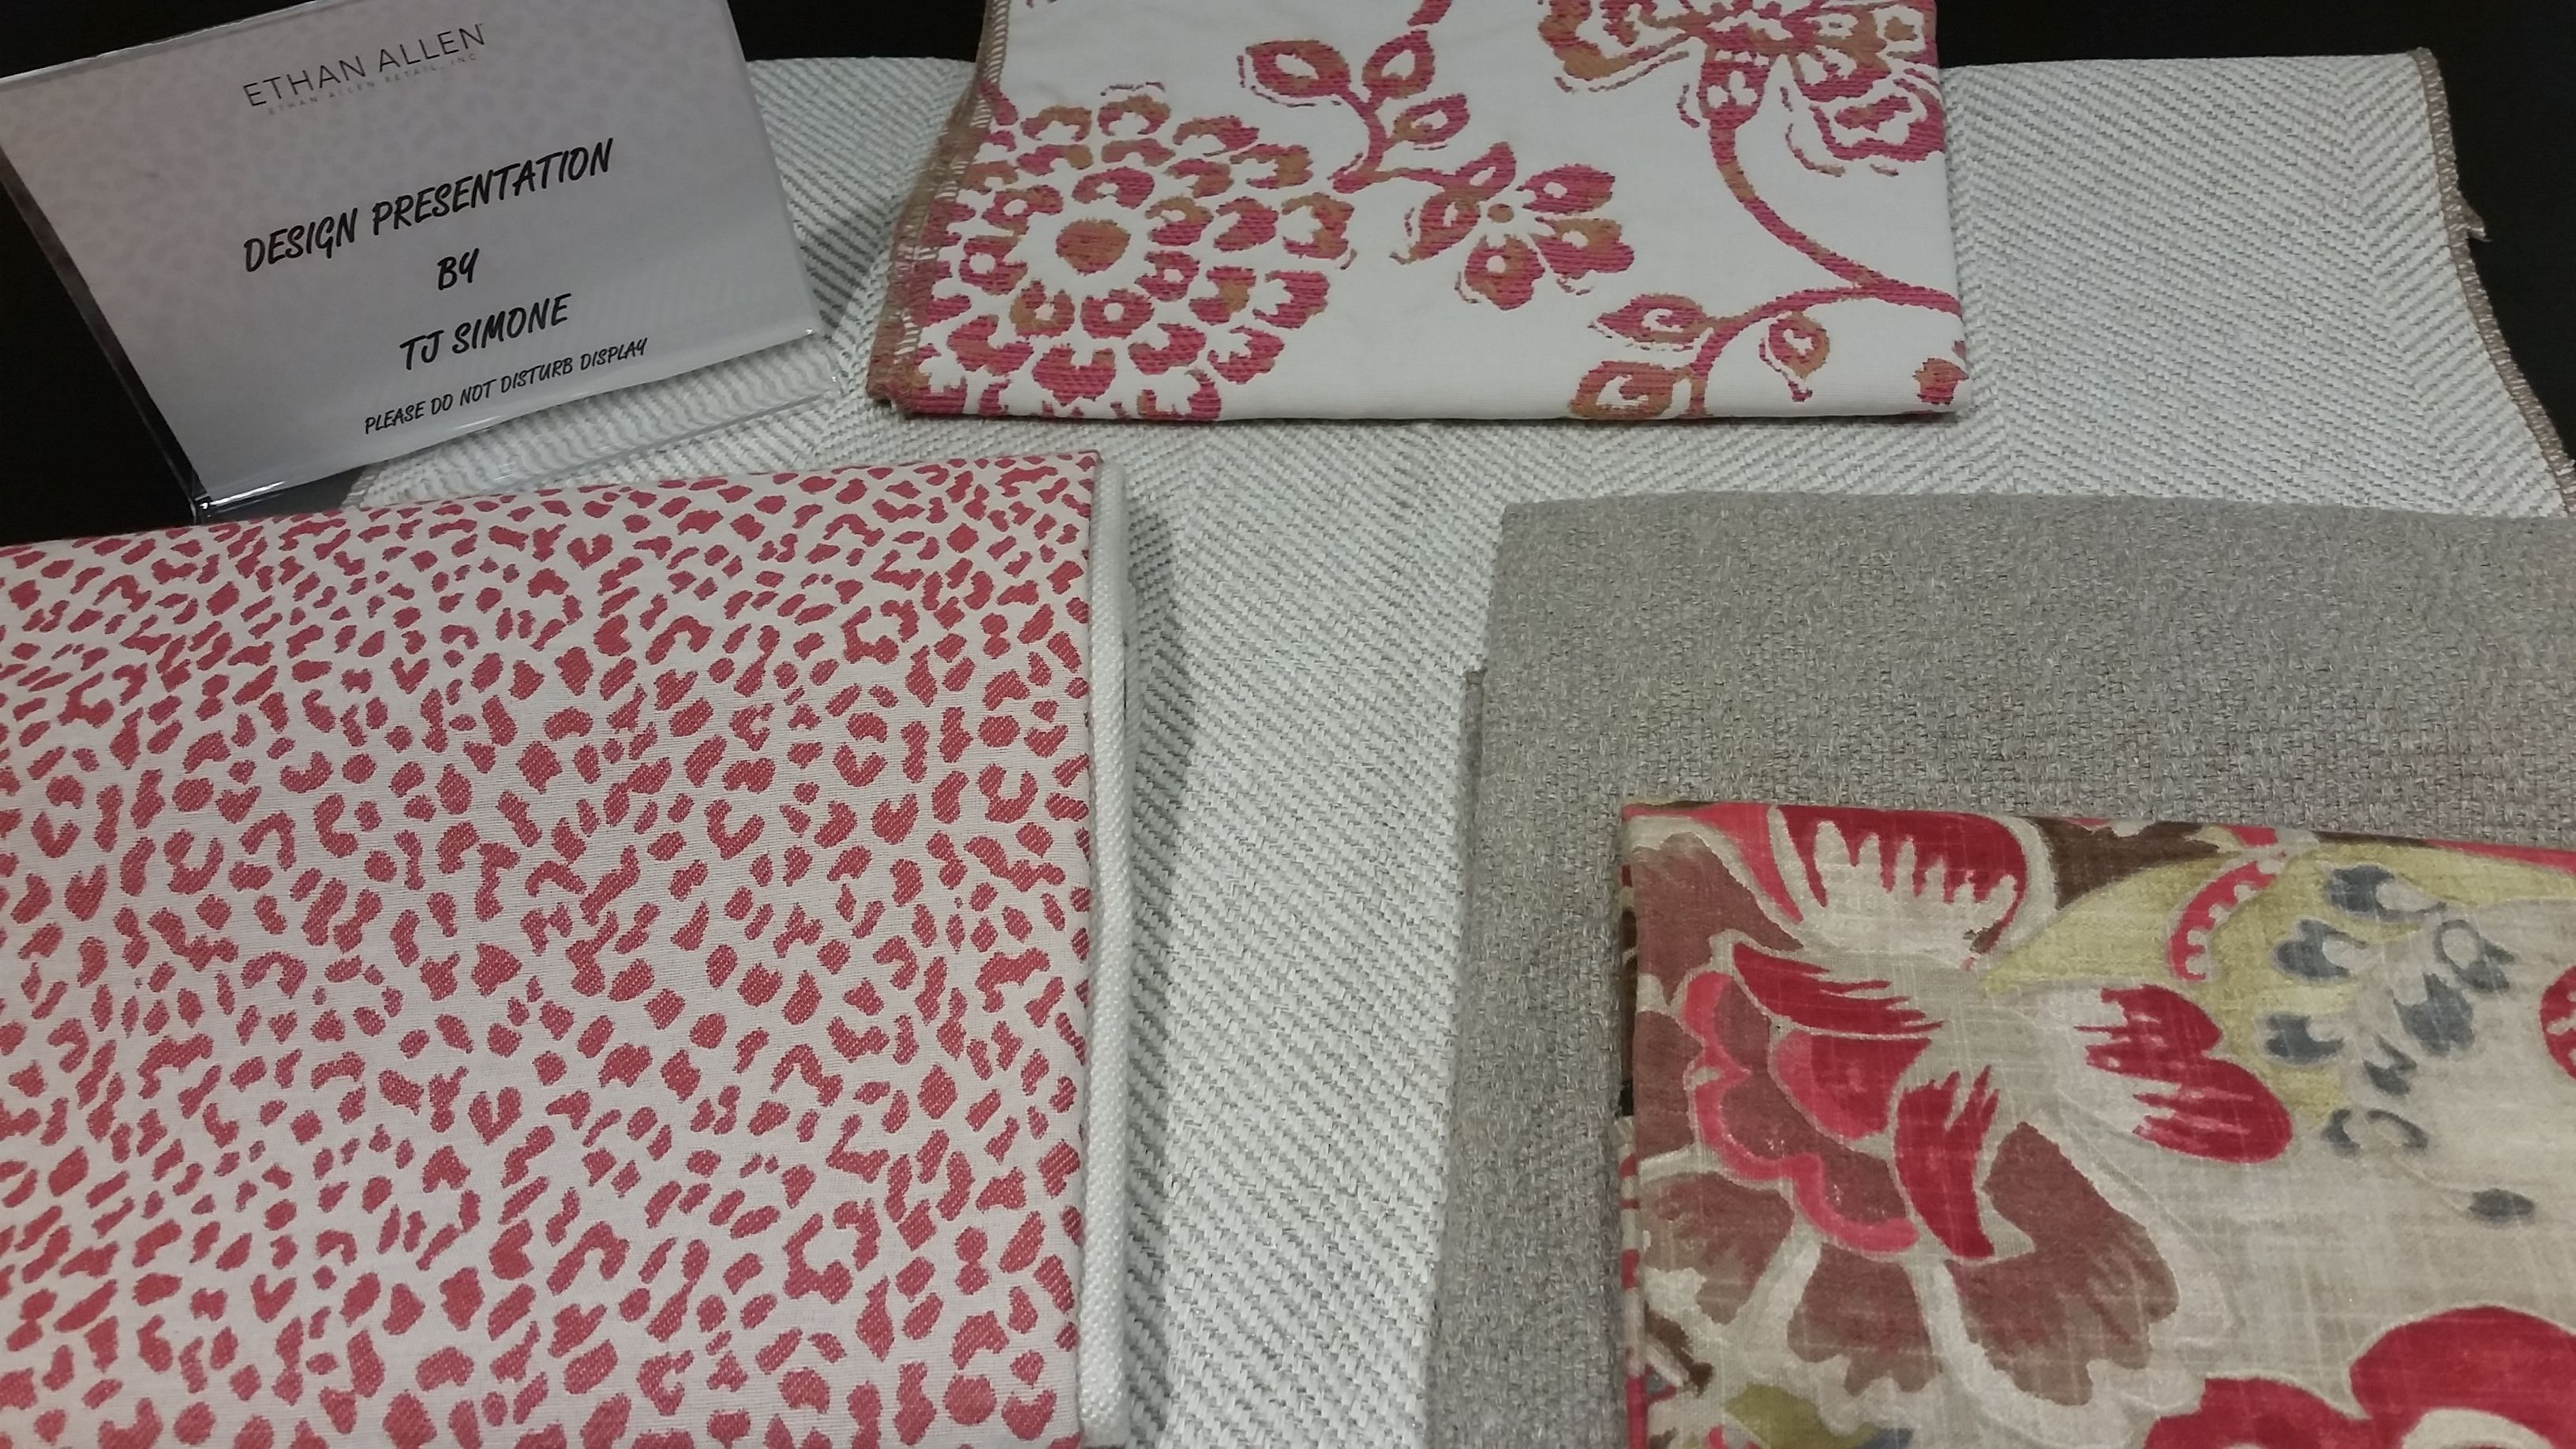 A beautiful color palette with shades of pink and tan tj simone